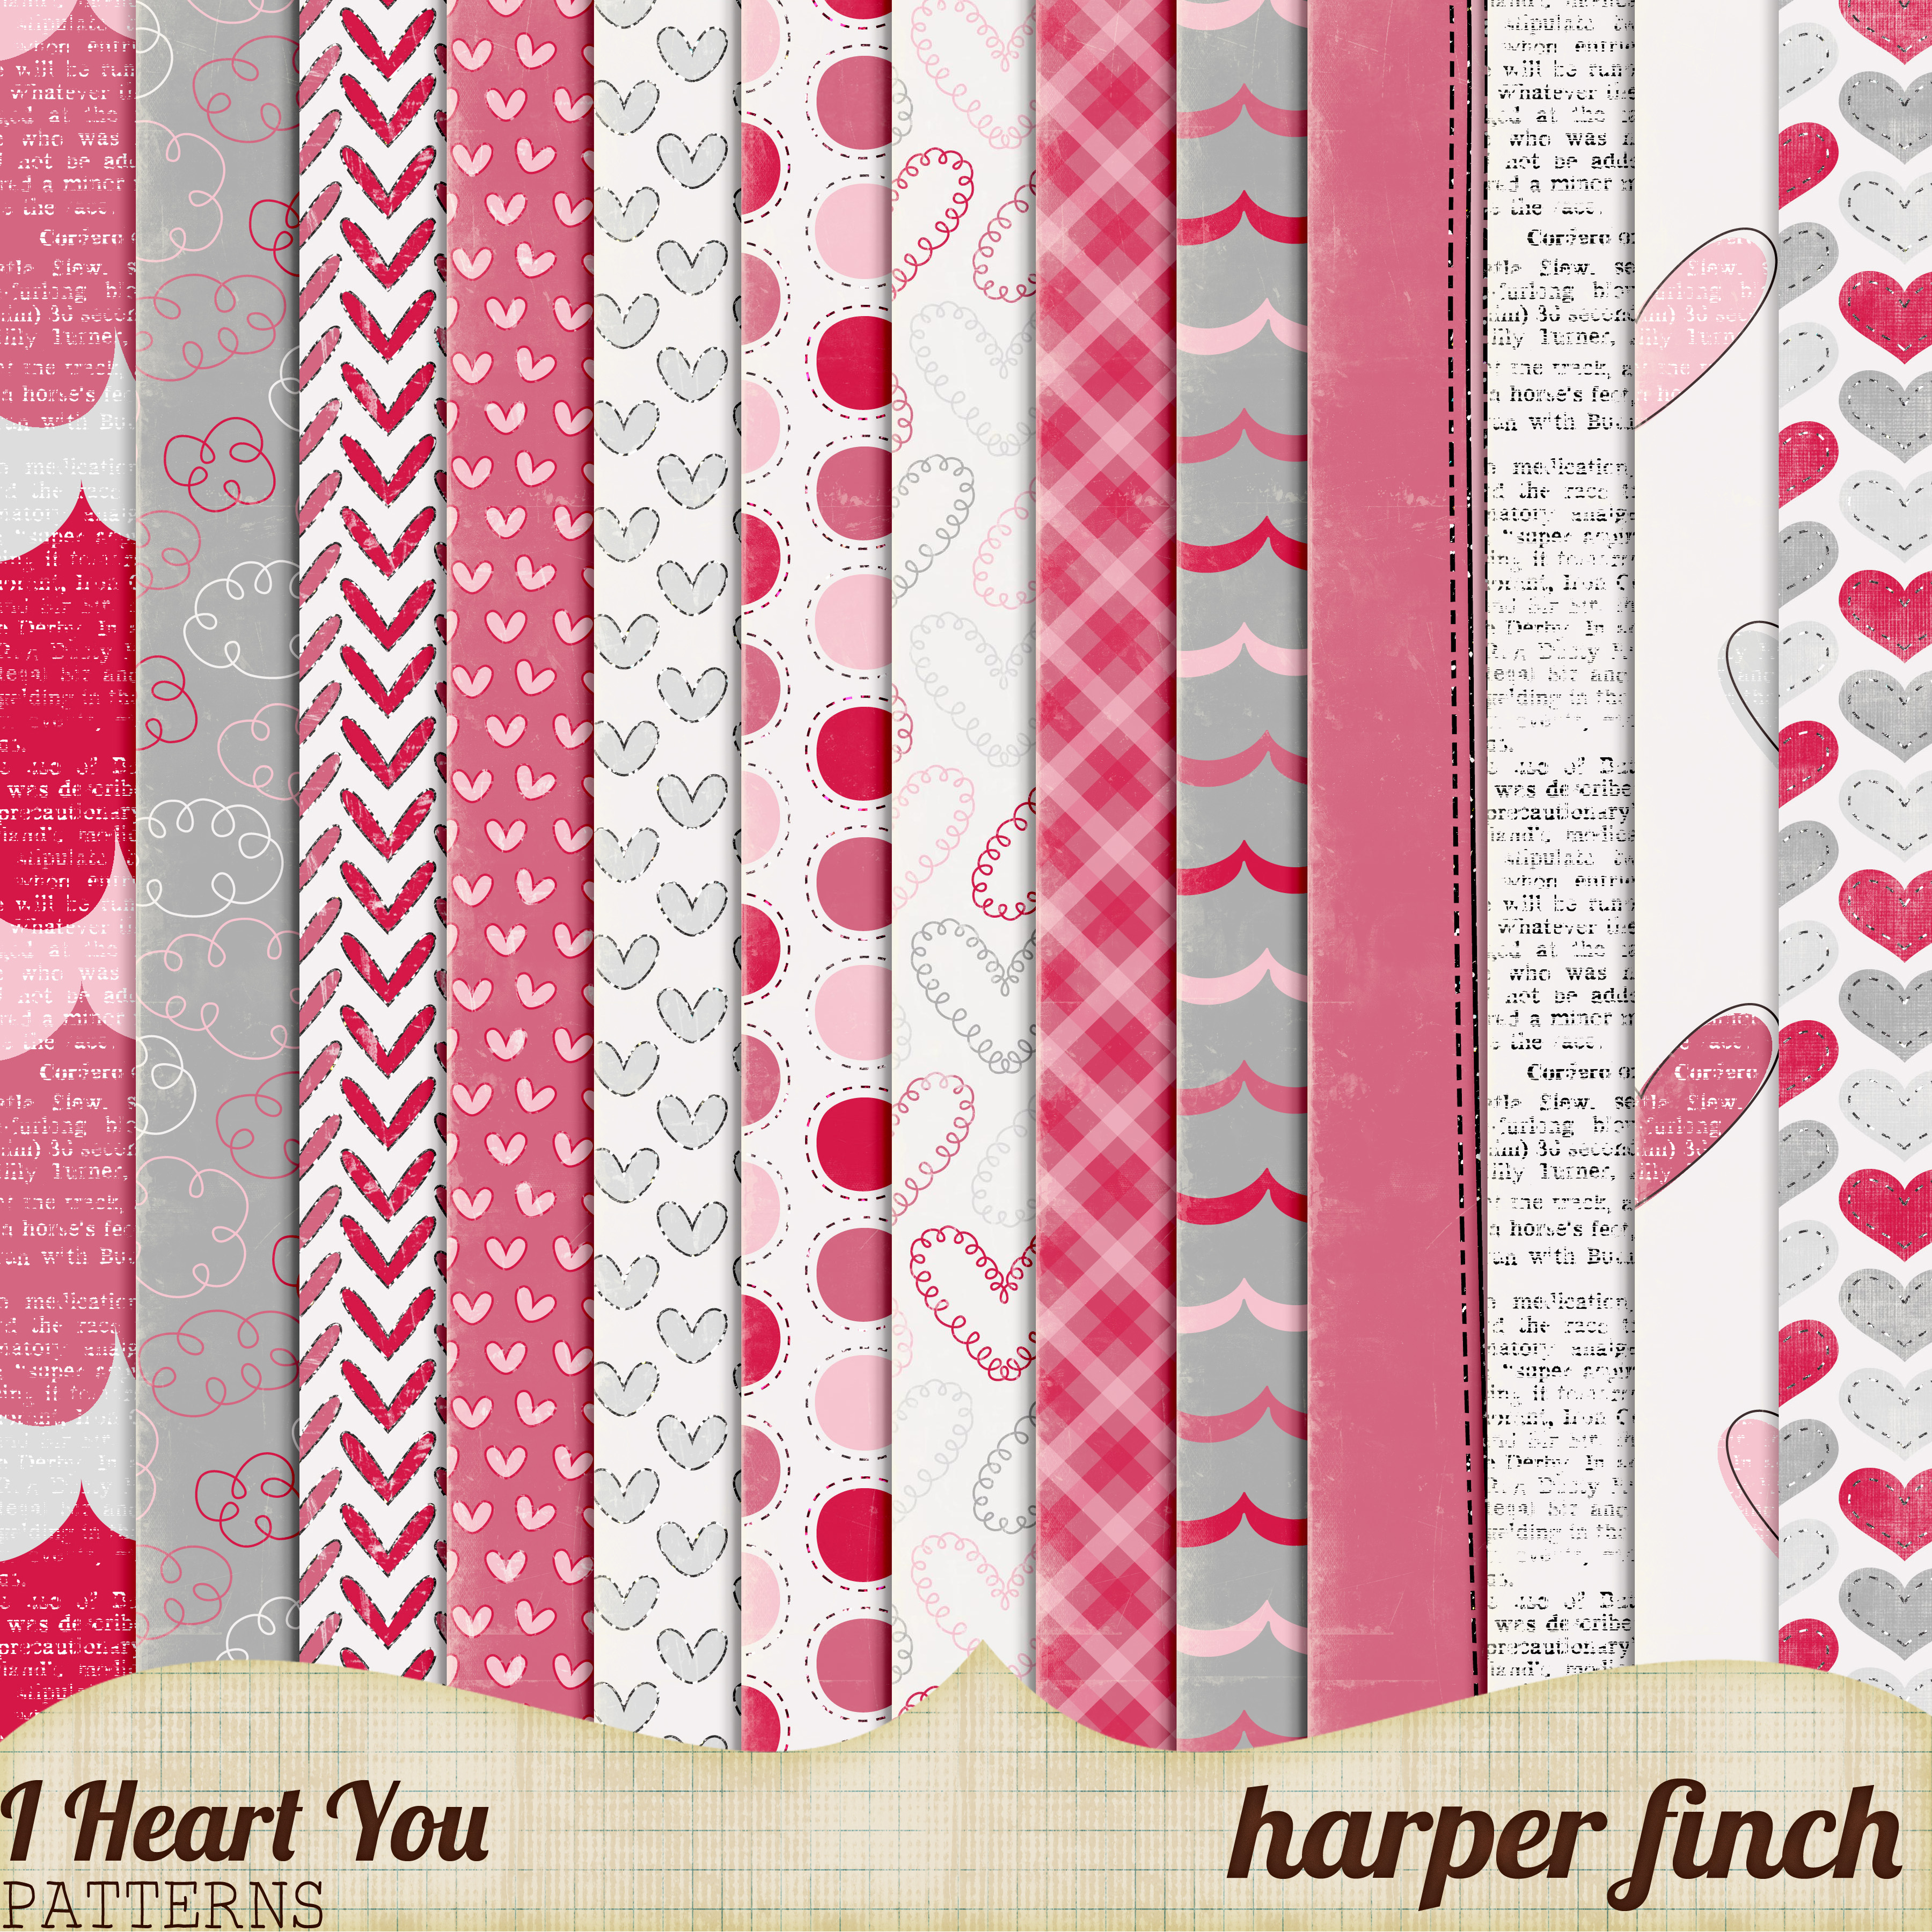 I Heart You, Patterns